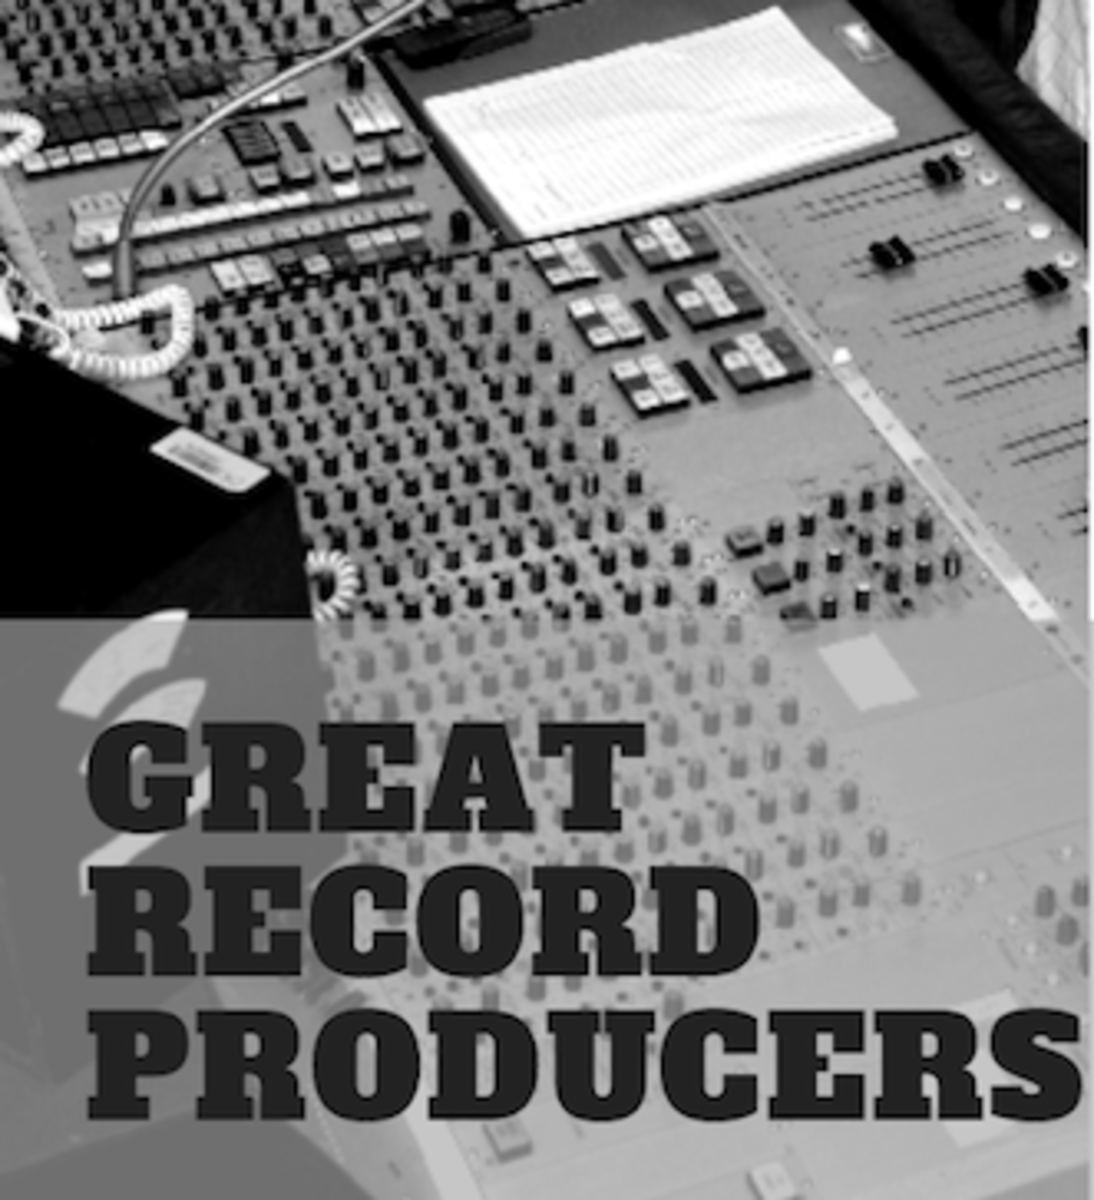 Read about 10 great record producers who have shaped American music.